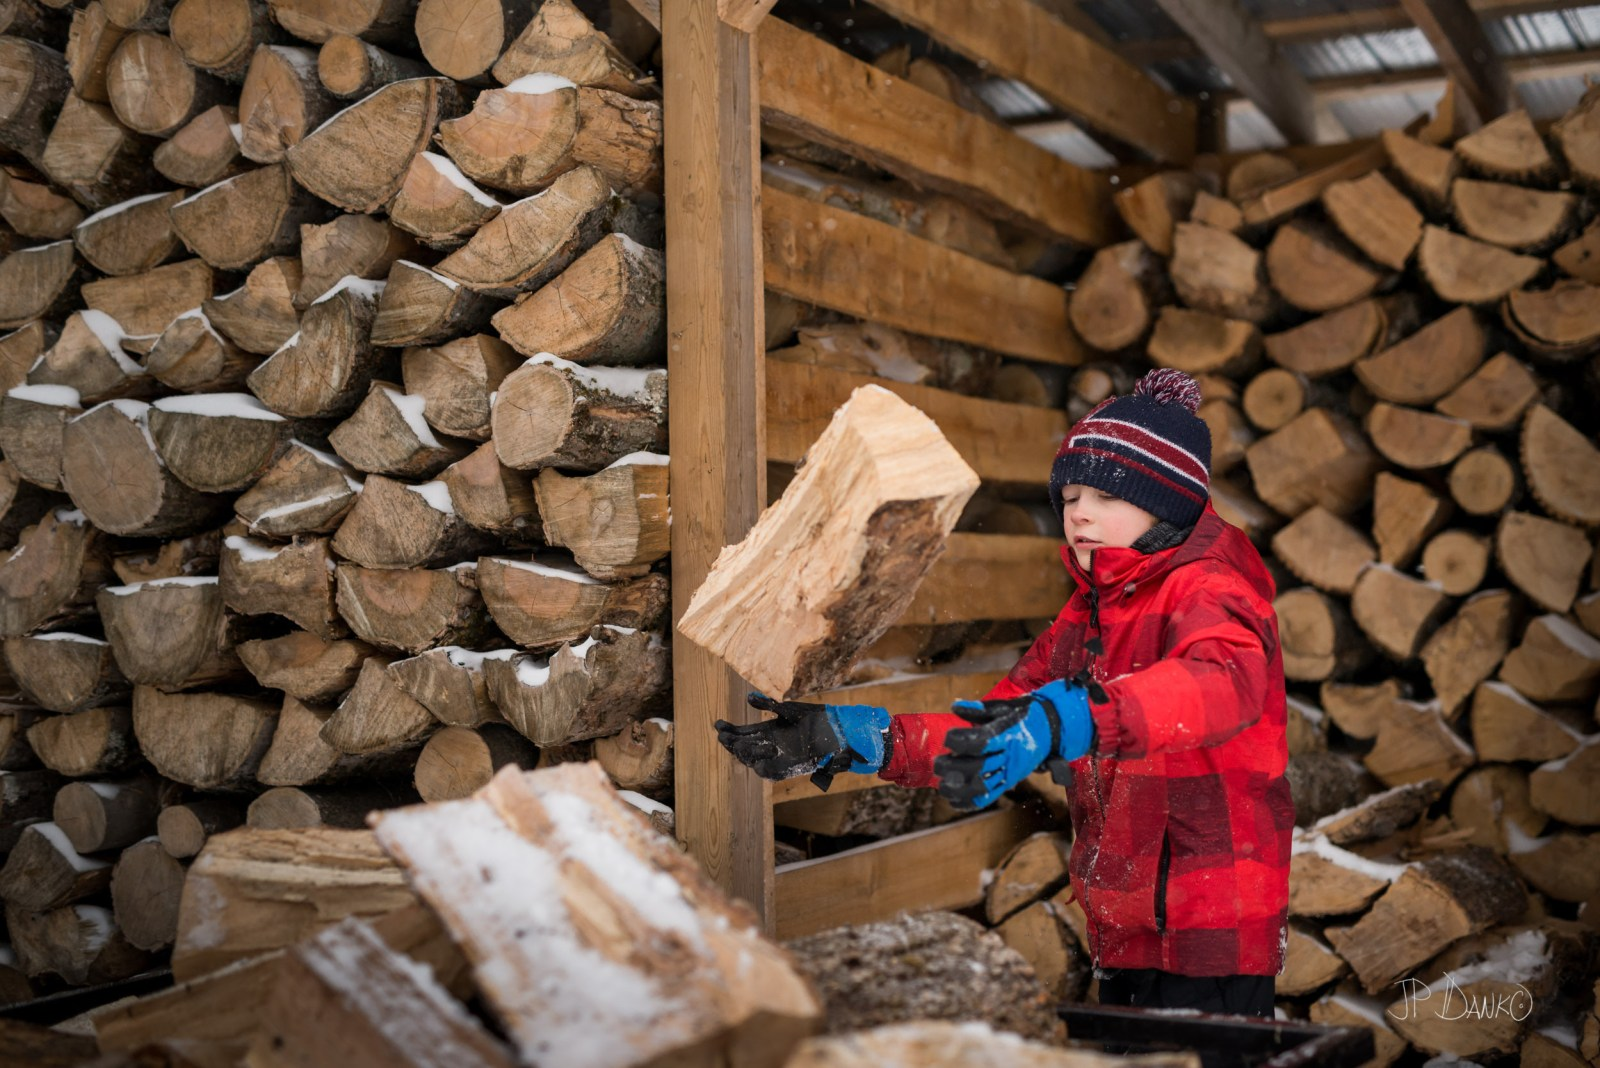 Boy in red winter jacket tosses firewood from wood shed onto pile of firewood